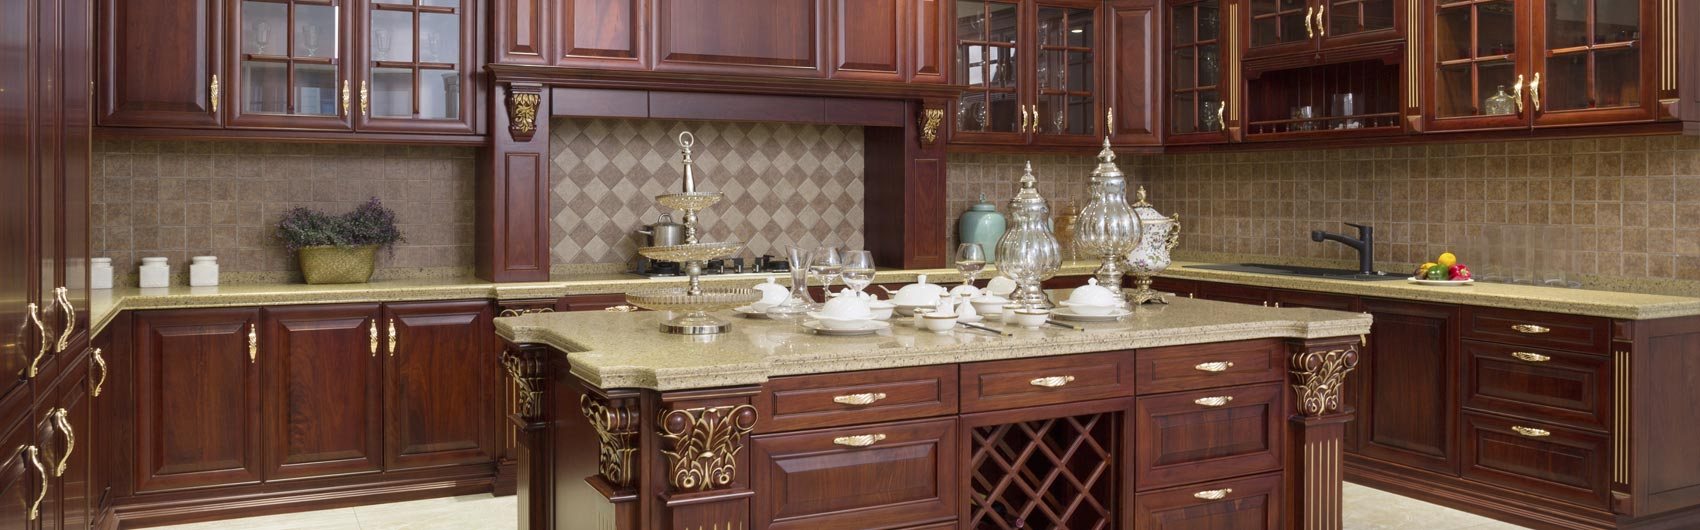 gvkustomkitchens kitchen remodeling lincoln ne Cabinet Finishes